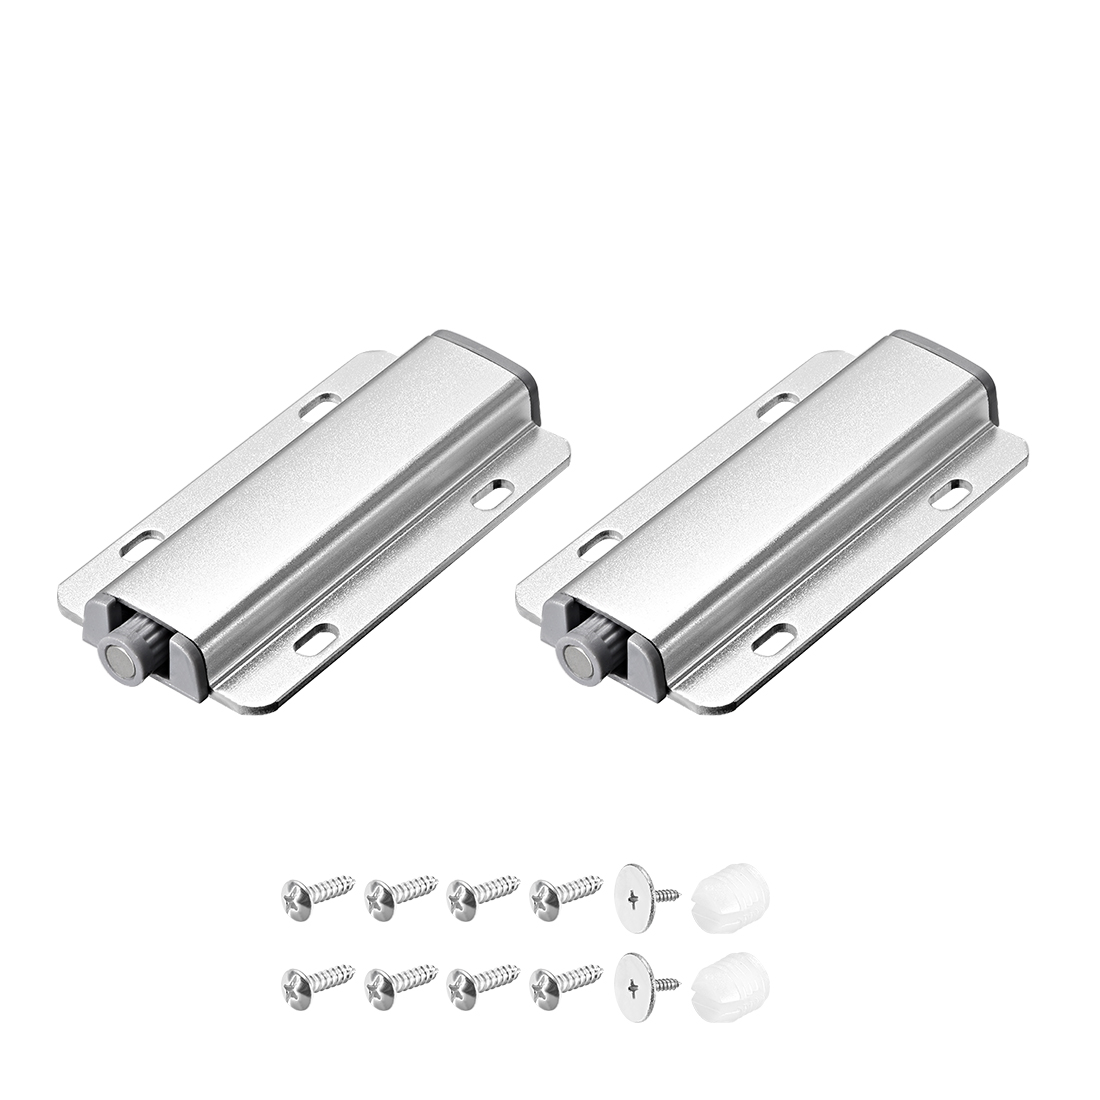 Magnetic Touch Press Catch Latch for Furniture Cabinet Door Cupboard 2 Sets